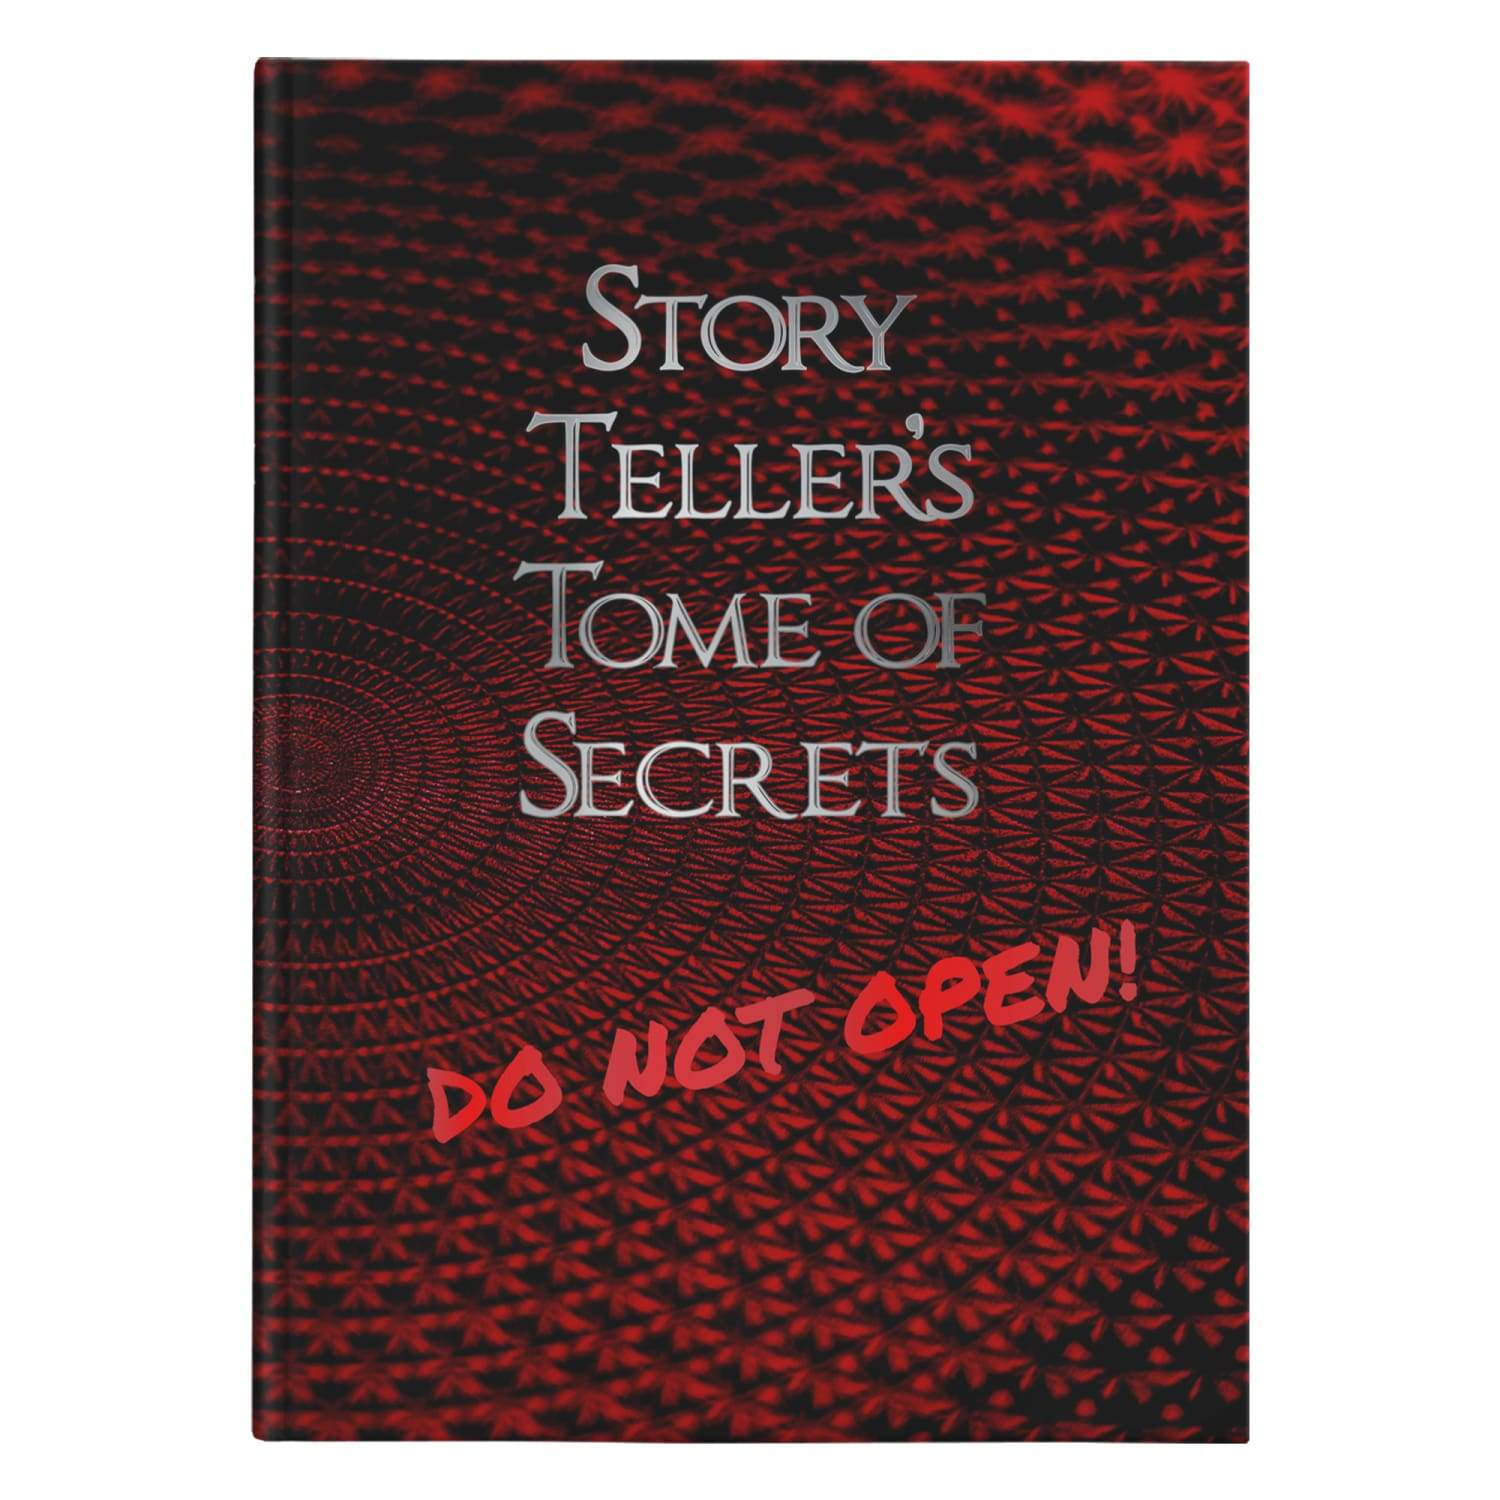 Story Teller's Tome of Secrets Hardcover Journal - Small (5.75 x 8) - Journals